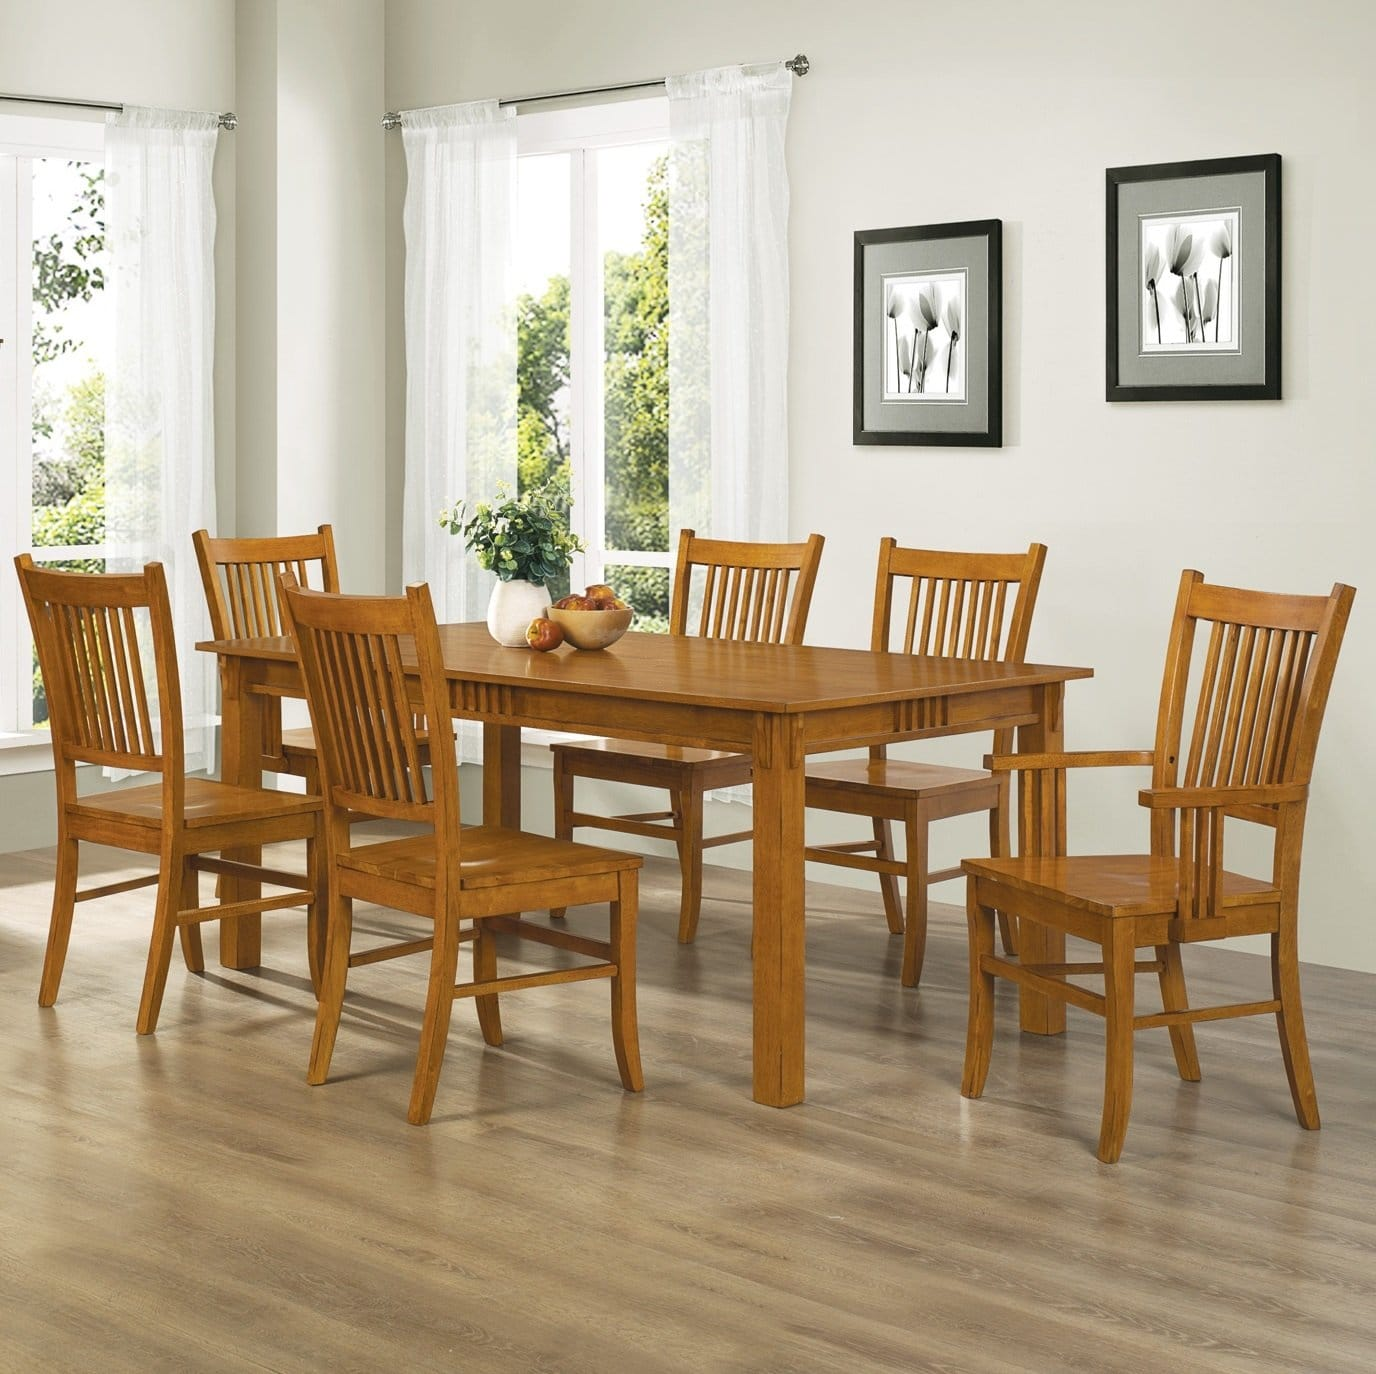 Formal Dining Room Sets For 12: Best Formal Dining Room Sets In 2019 Reviews